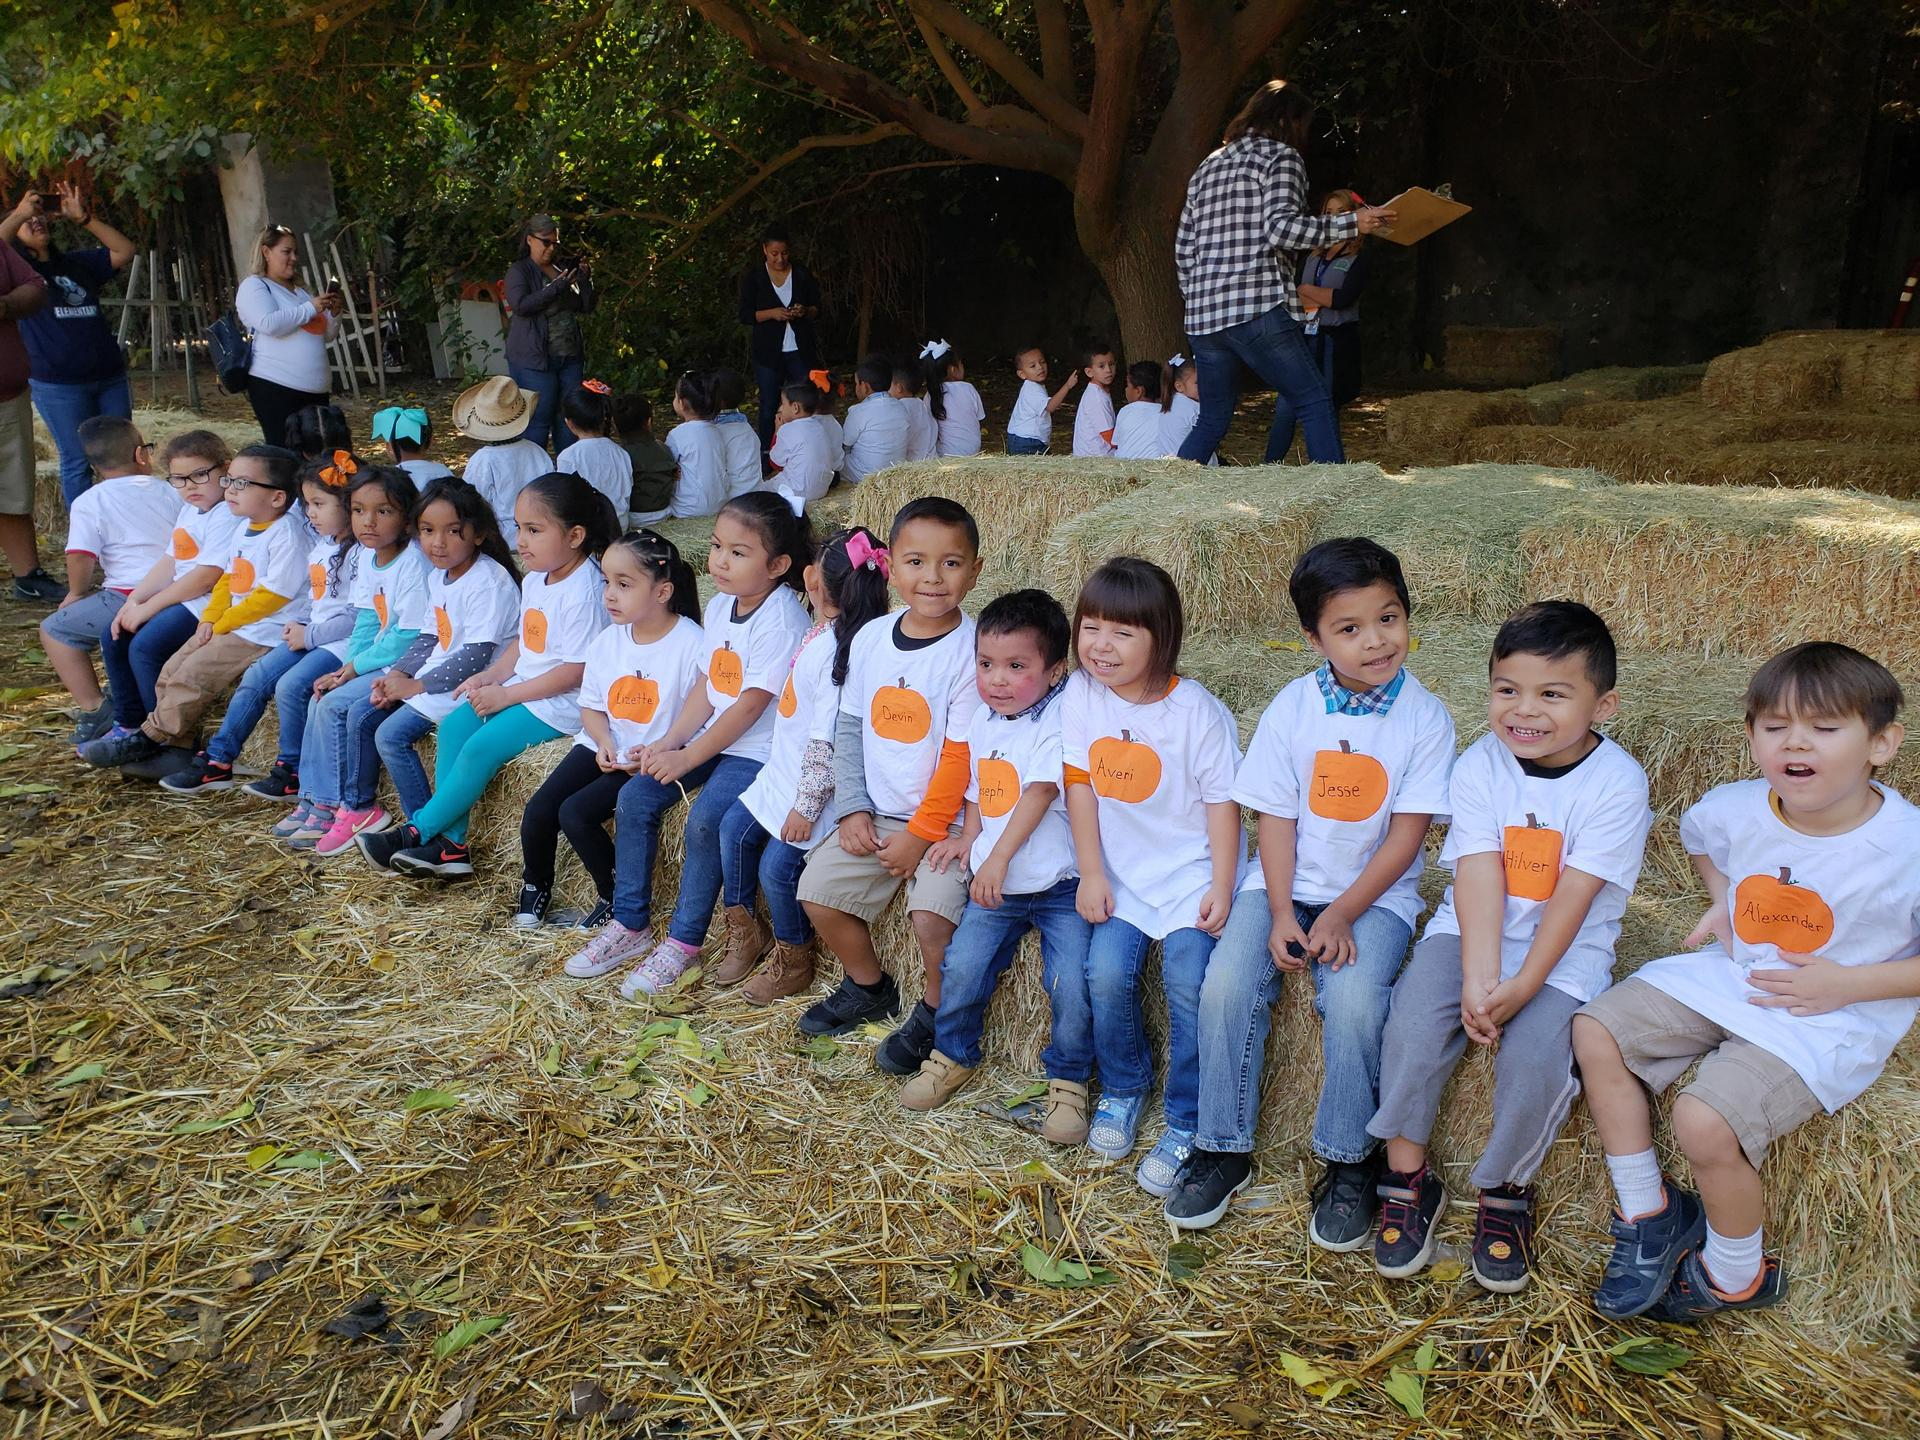 Students on a field trip to pumpkin patch